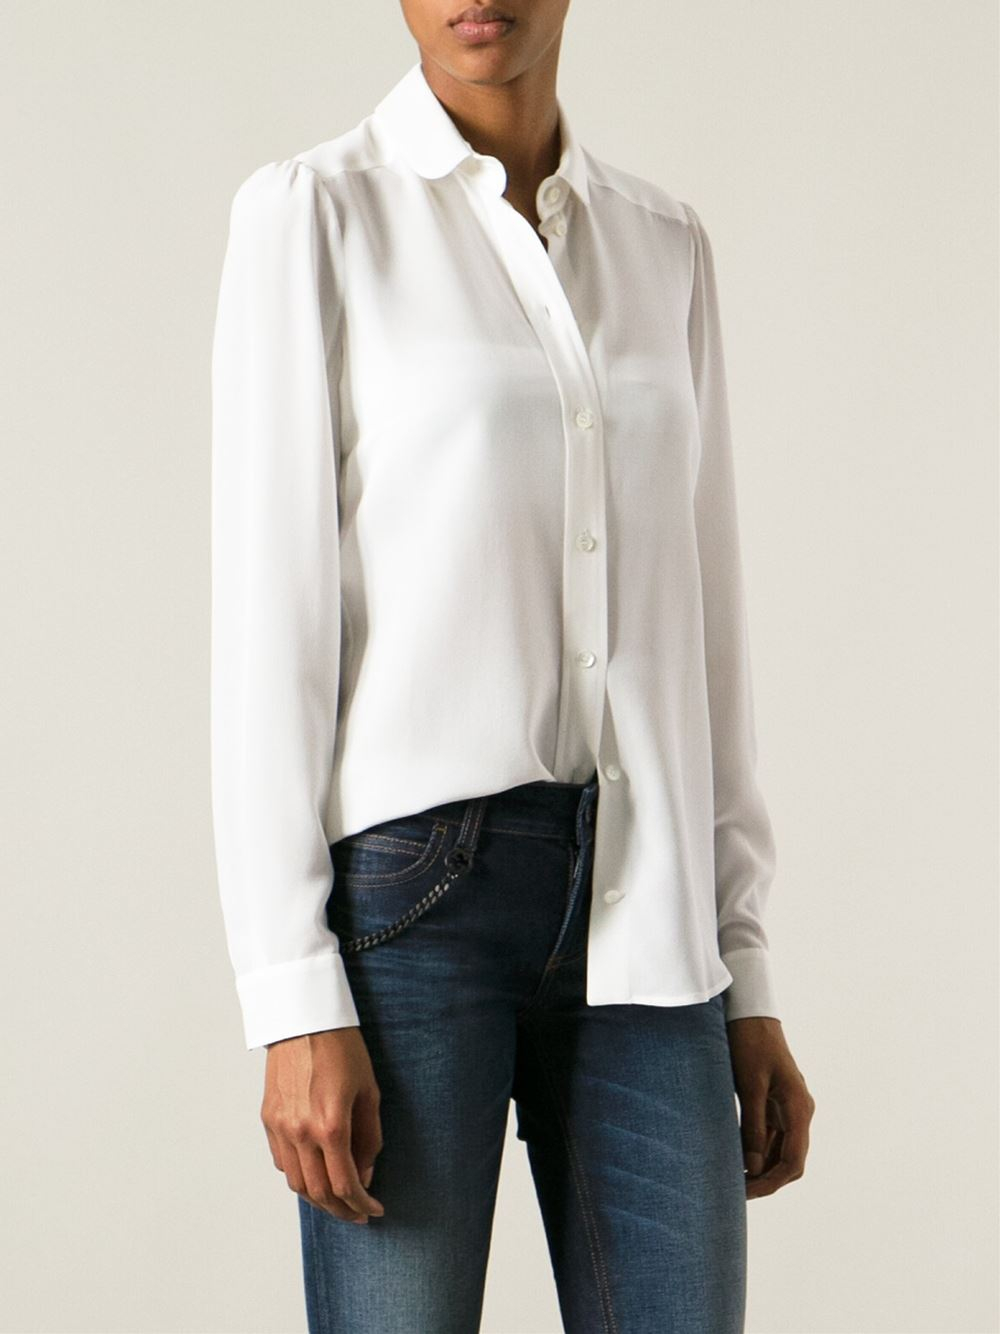 ff49065f6328 Gucci Crepe Shirt in White - Lyst